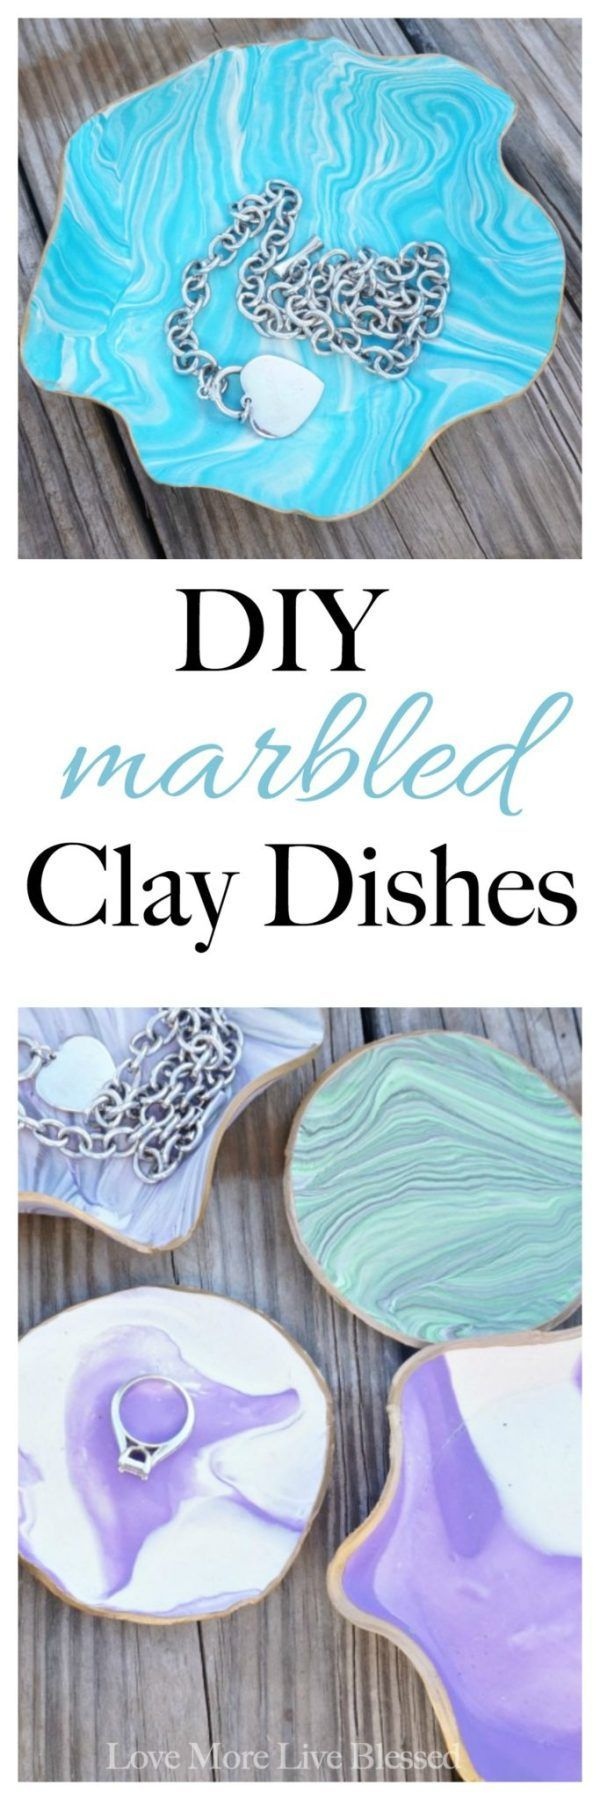 DIY Marbled Clay Dishes  Love More Live Blessed